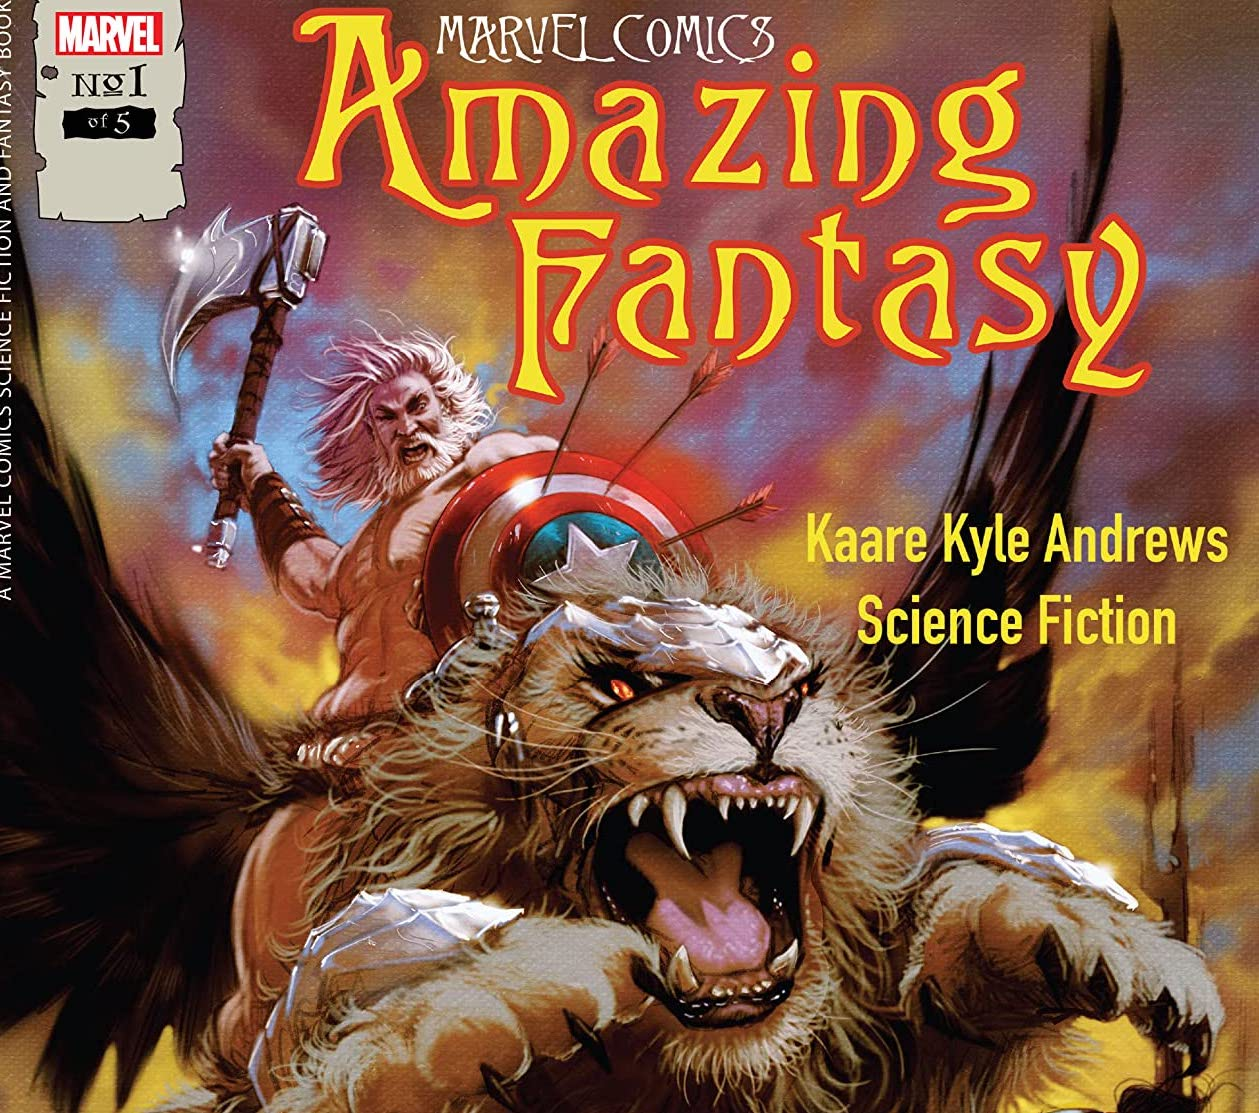 'Amazing Fantasy' #1 blends superheroes and fantasy well